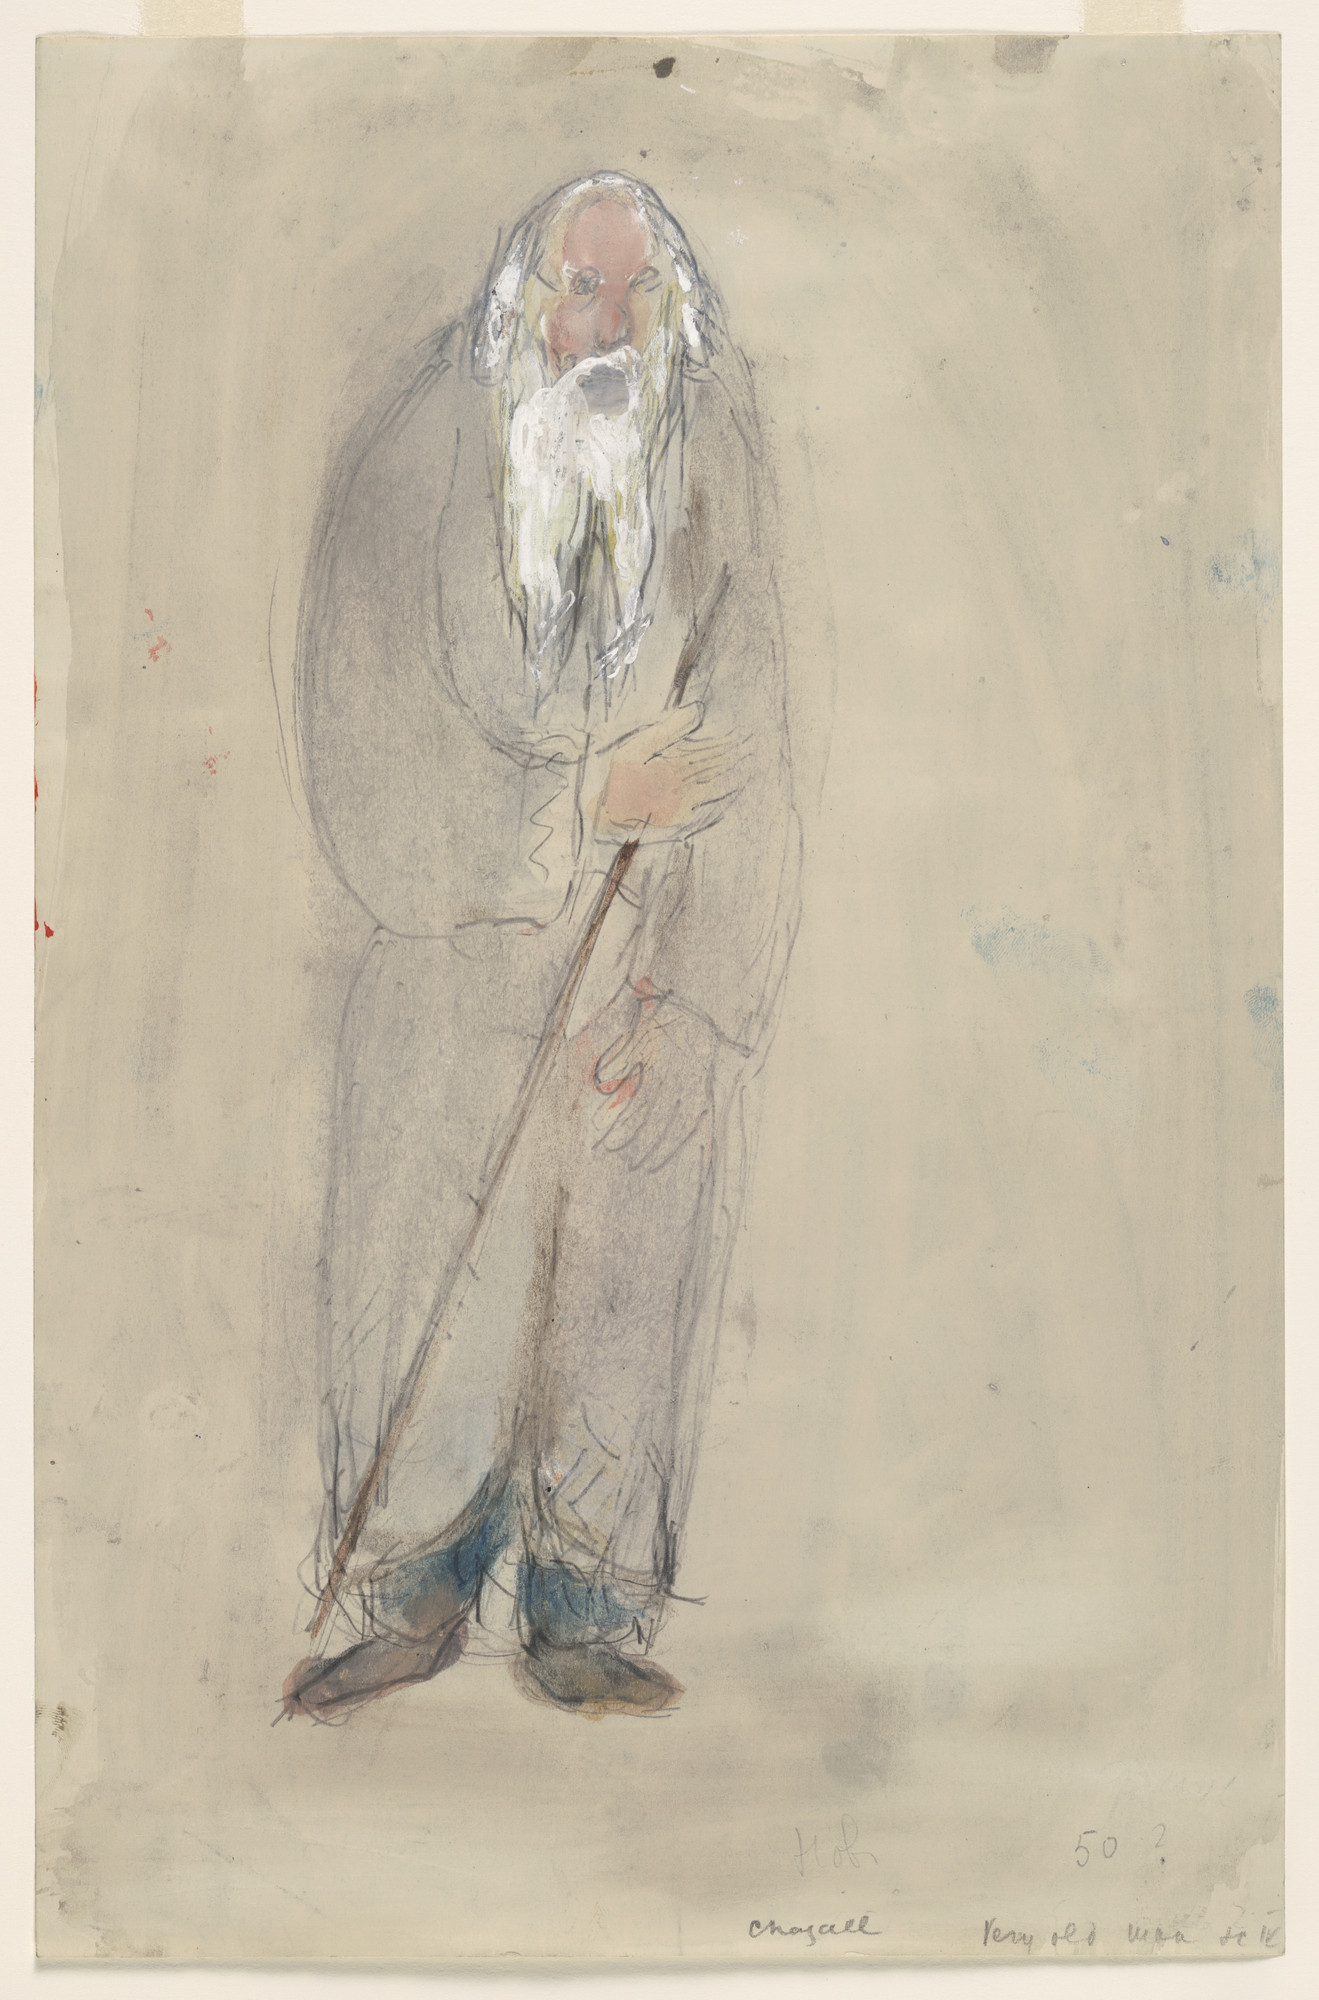 Marc Chagall. A Very Old Man, costume design for Aleko (Scene IV). (1942)